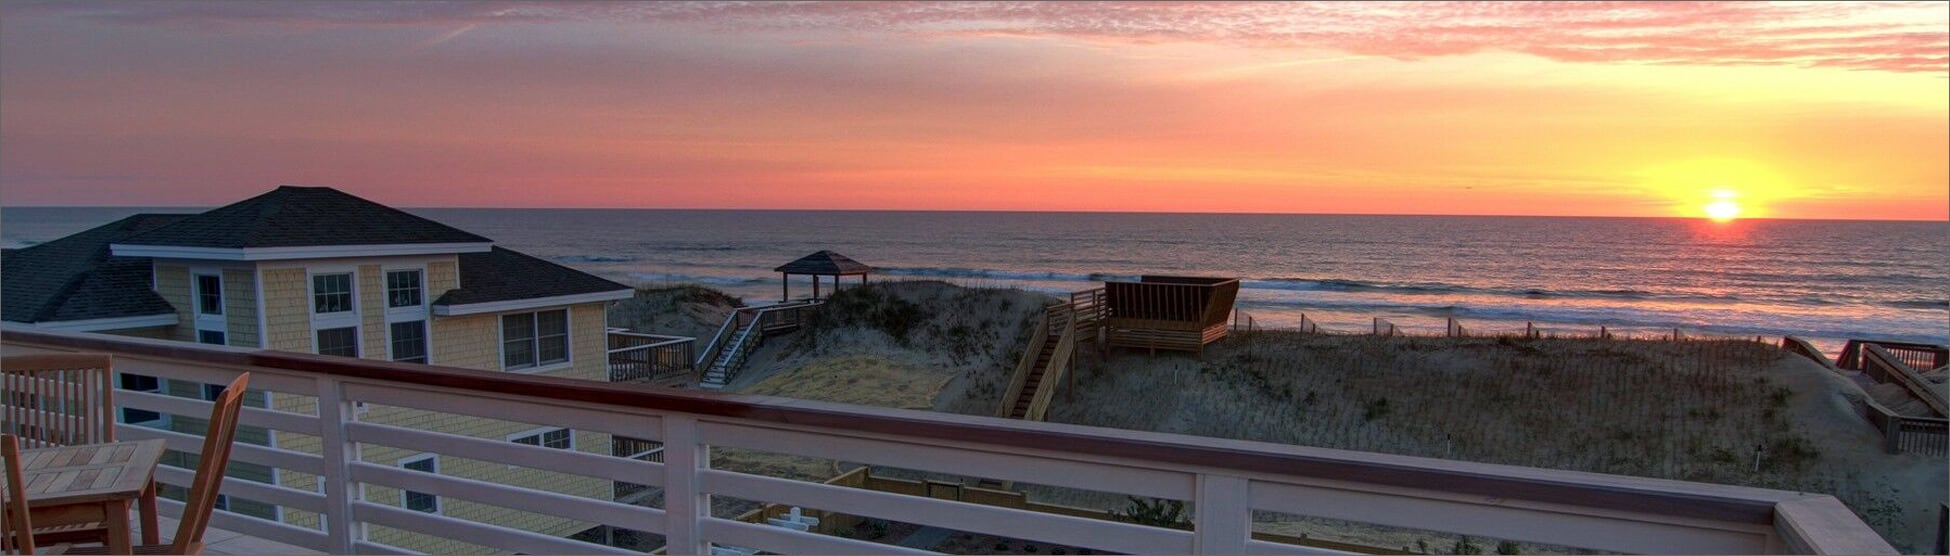 Fabulous Oceanfront Vacation Rental Homes Kees Outer Banks Nc Interior Design Ideas Clesiryabchikinfo